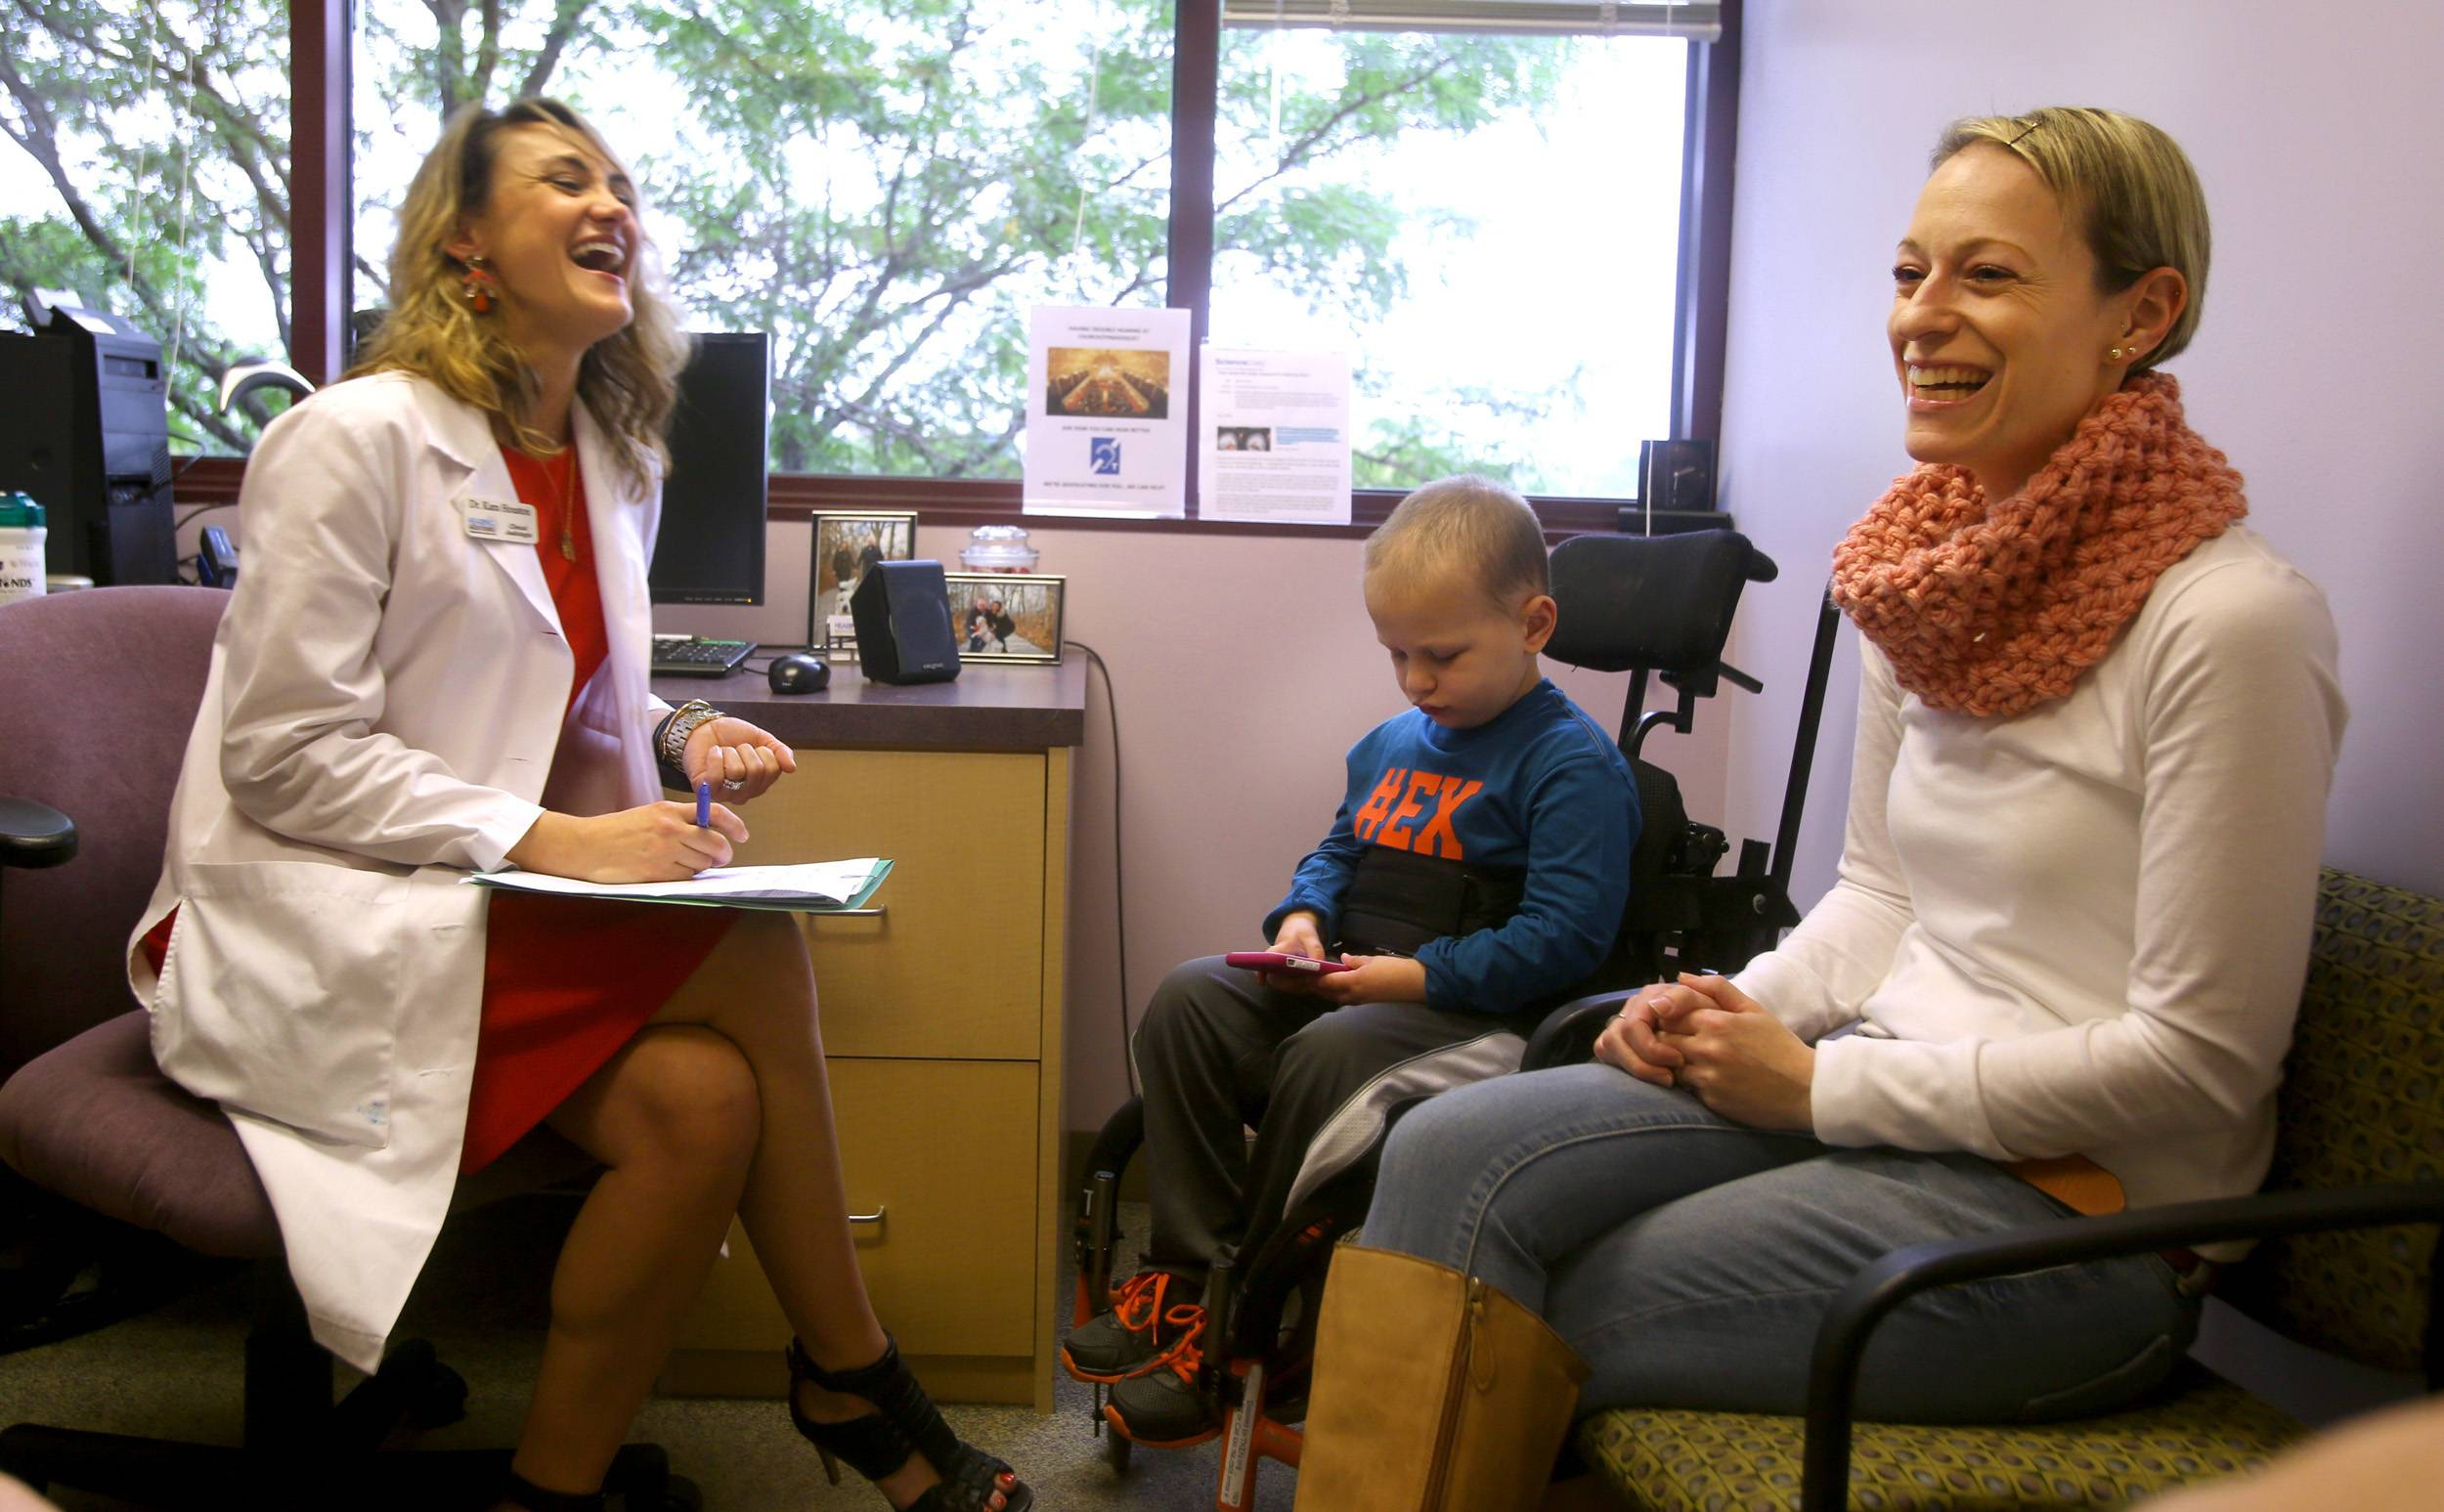 Dr. Kara Houston meets with 6-year-old patient Riley Buckolz and Riley's mom, Adena Buckolz, at the Hearing Health Center in Naperville, where Riley got a visit from his favorite superhero and hearing aids decorated with Batman's logo.